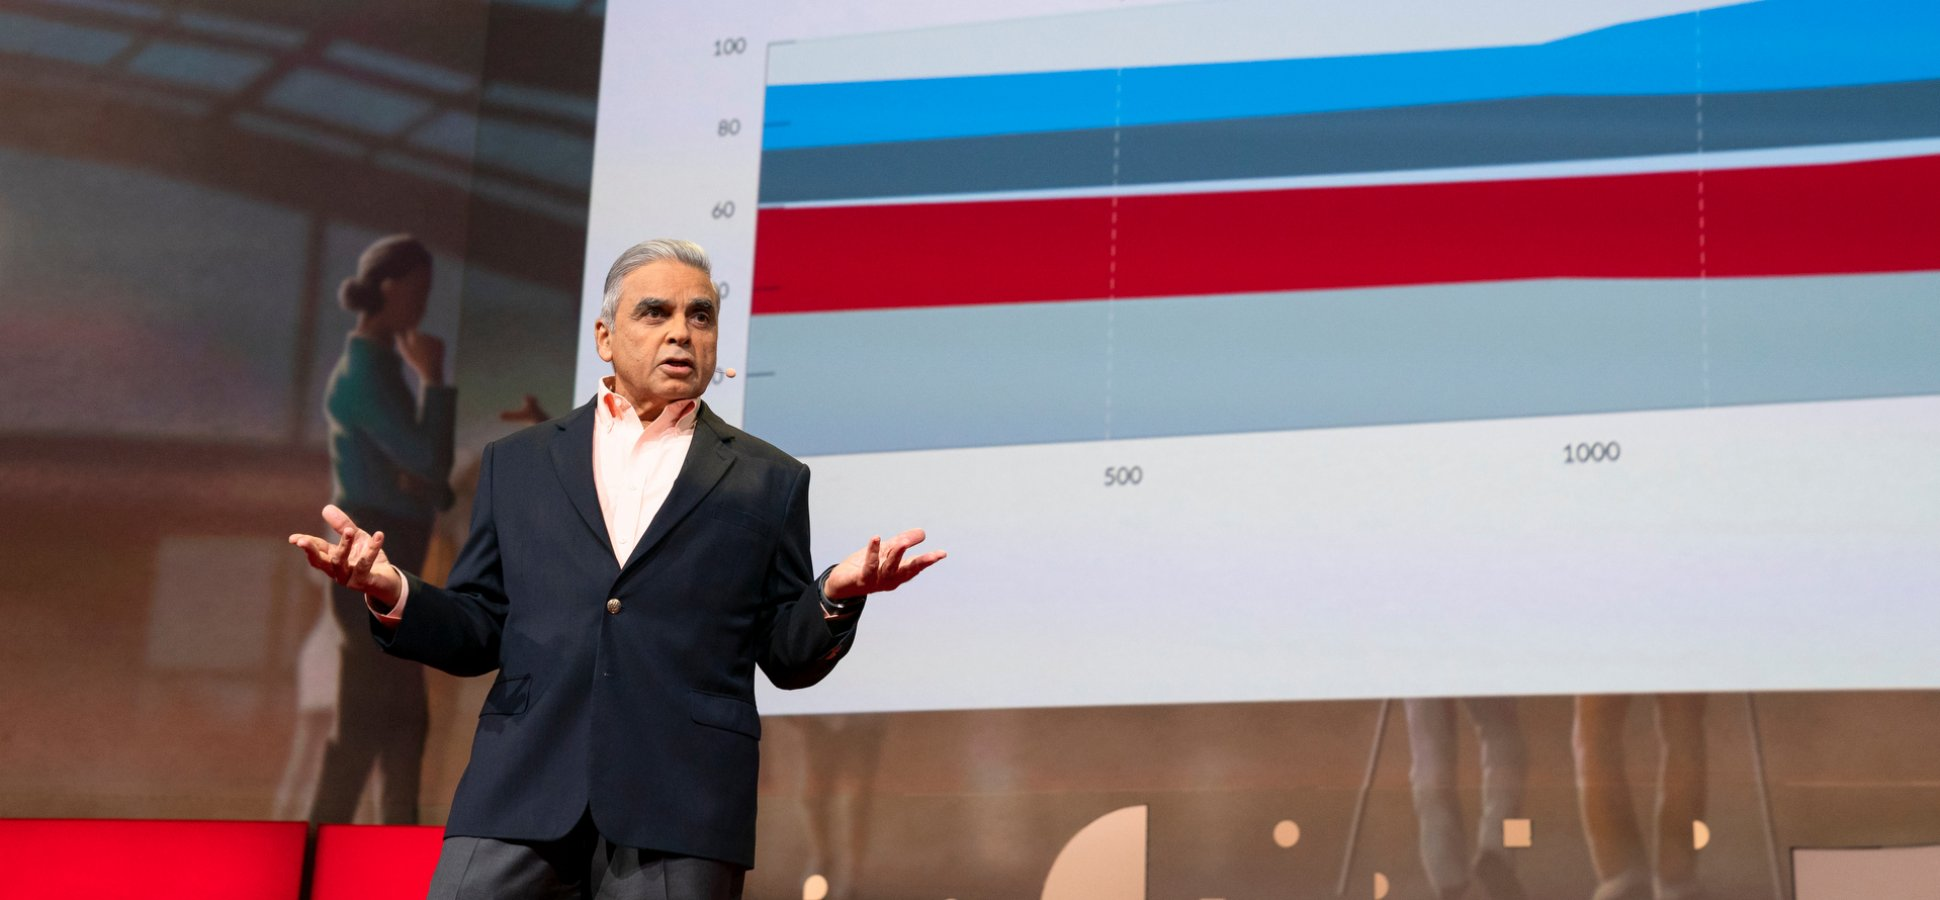 5 PowerPoint Slide Tips From the Most Successful TED Speakers